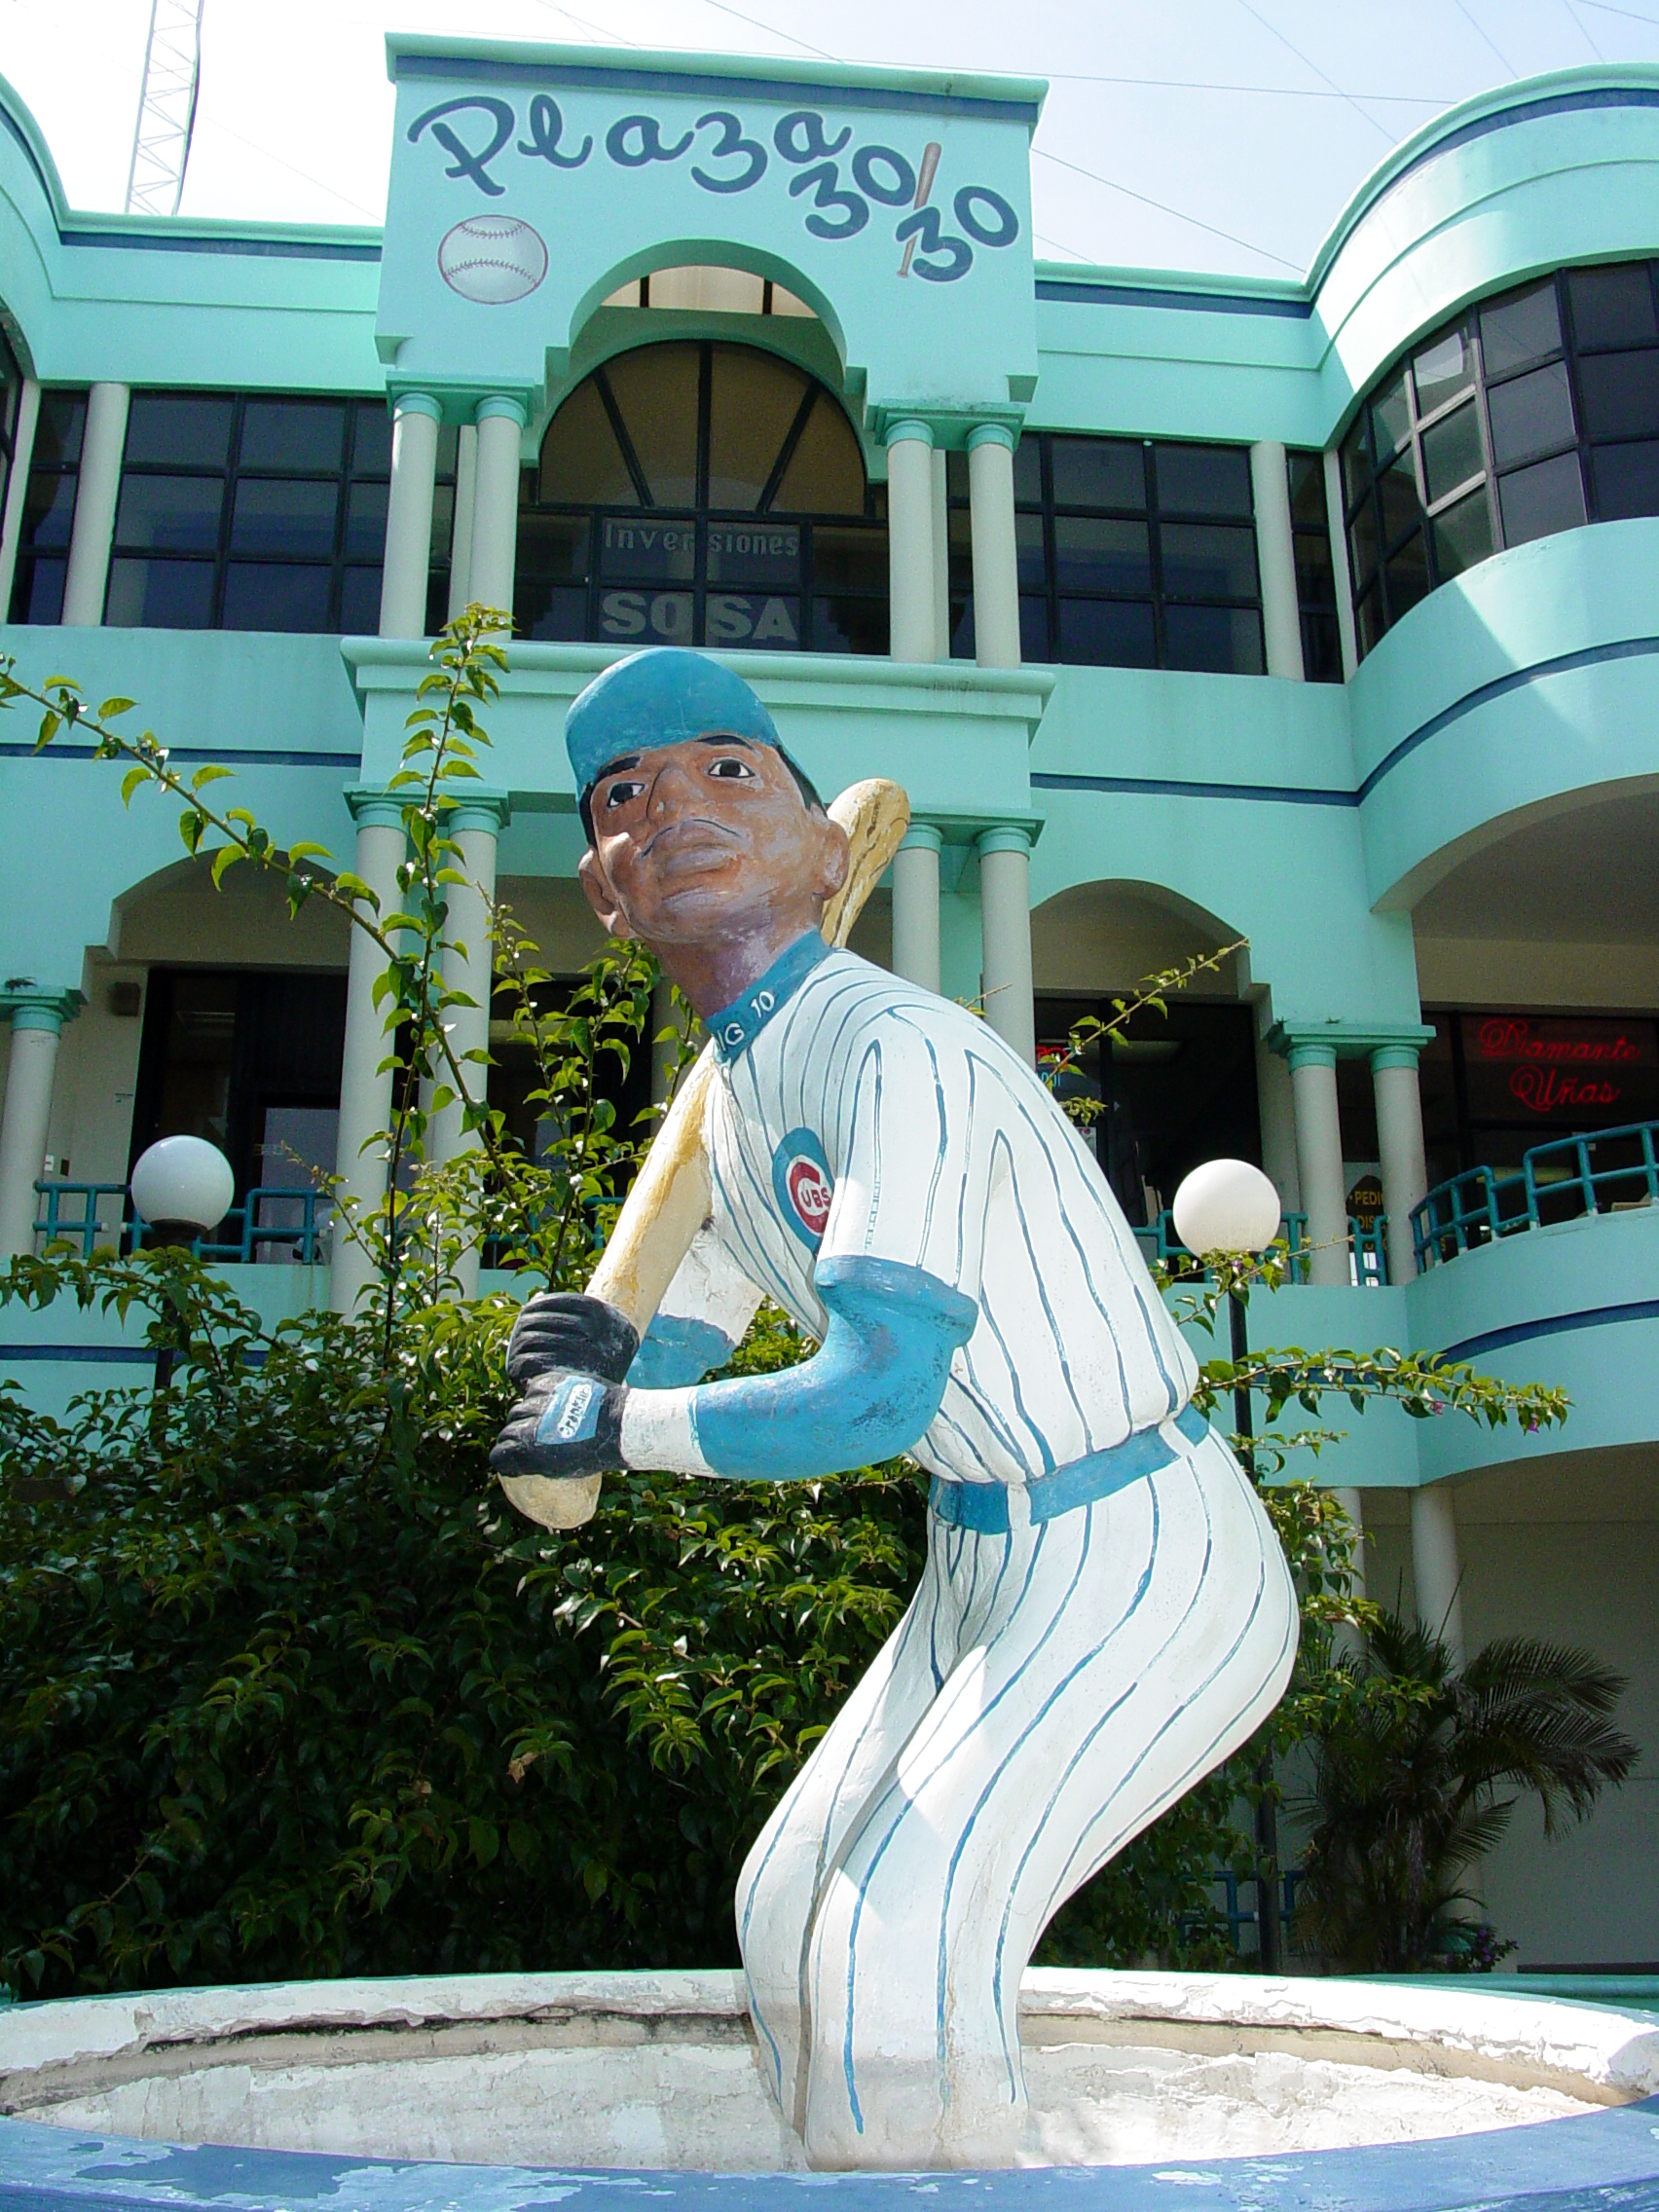 File Statue Of Sammy Sosa Outside The 30 30 Shopping Center San Pedro De Macoris Dominican Republic Jpg Wikimedia Commons